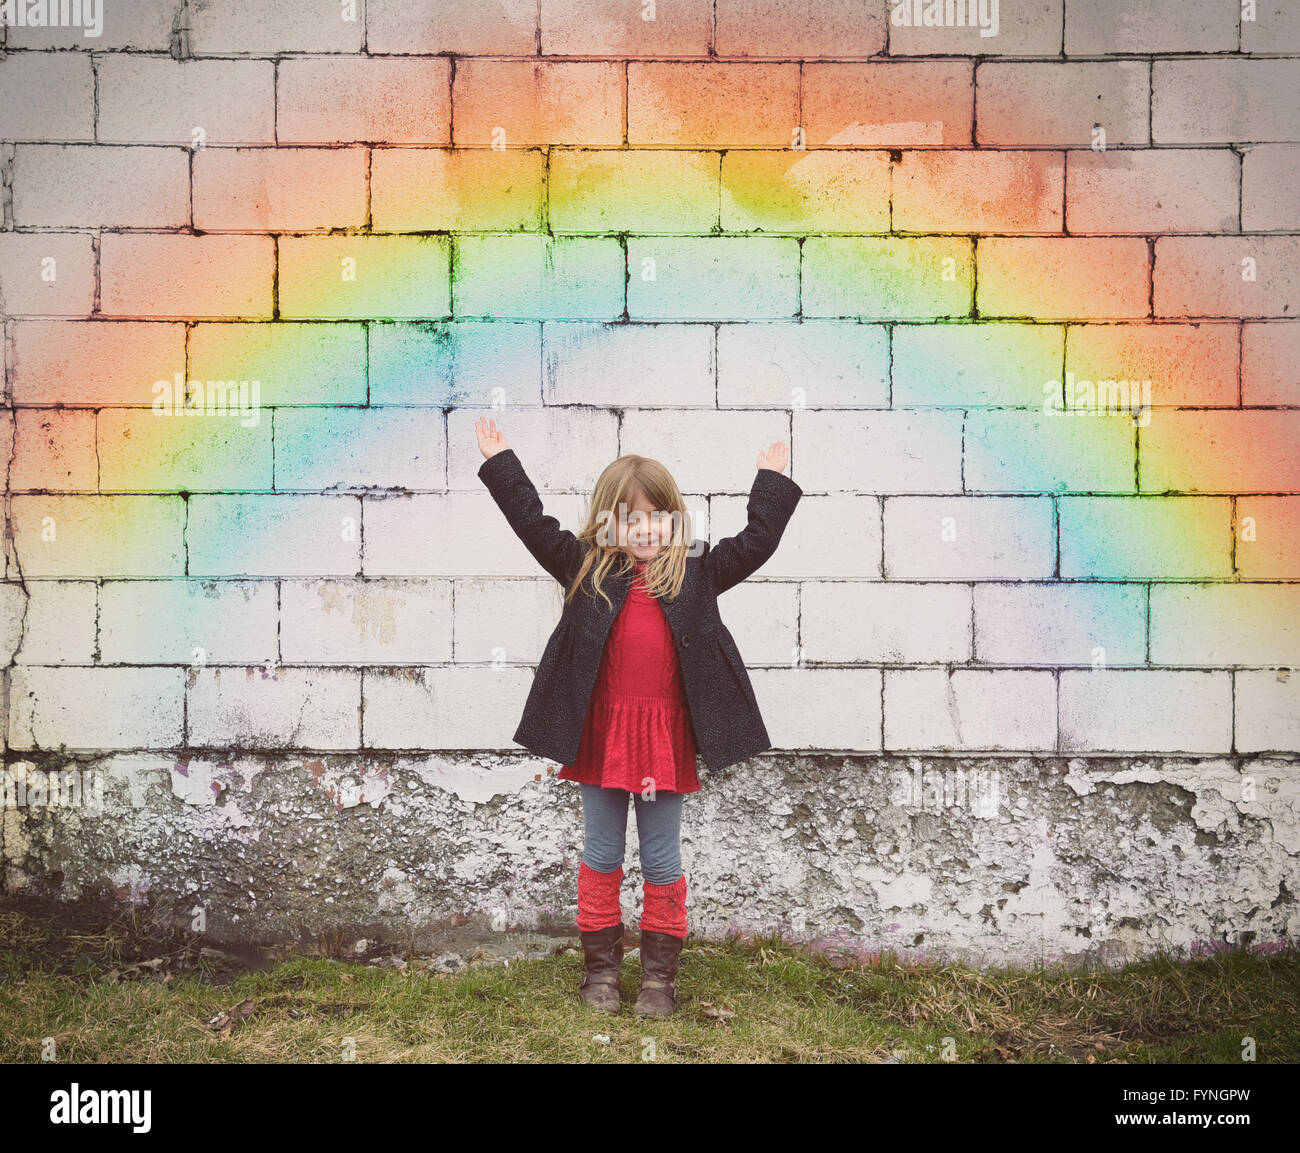 A happy little girl is standing against an old brick wall with a colorful rainbow and her hands are raised for a - Stock Image